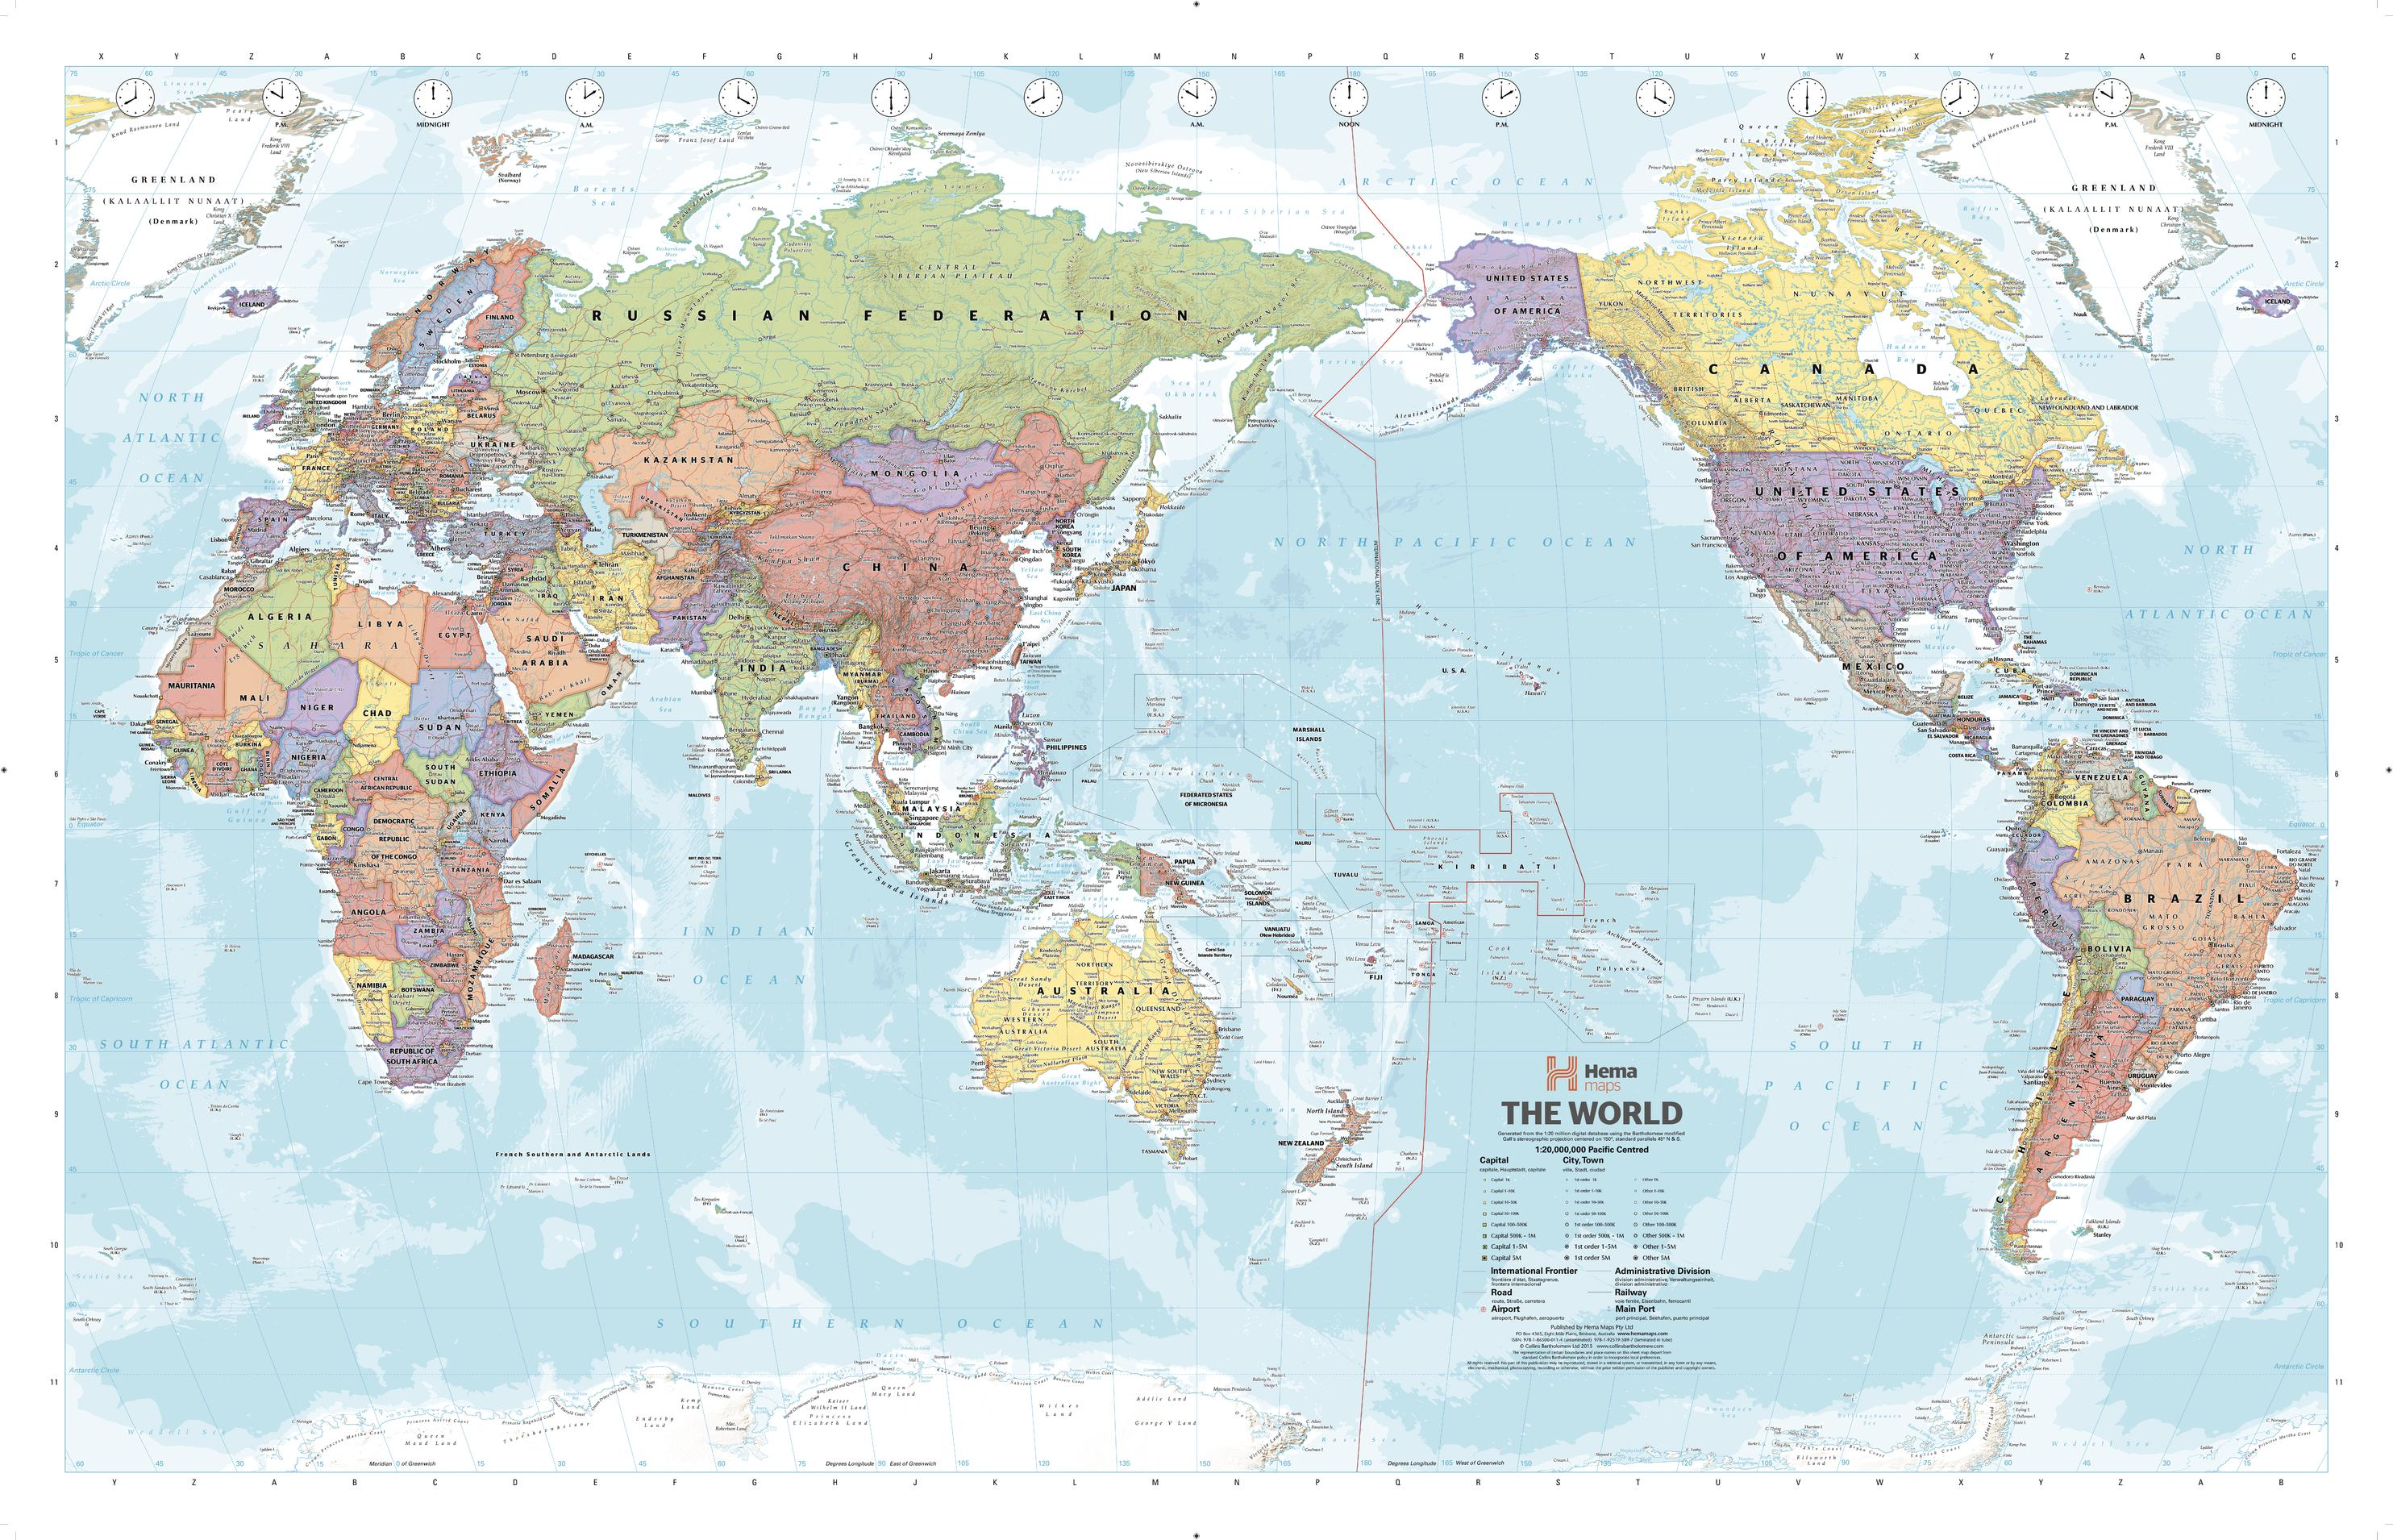 Pacific Centred World Political Supermap